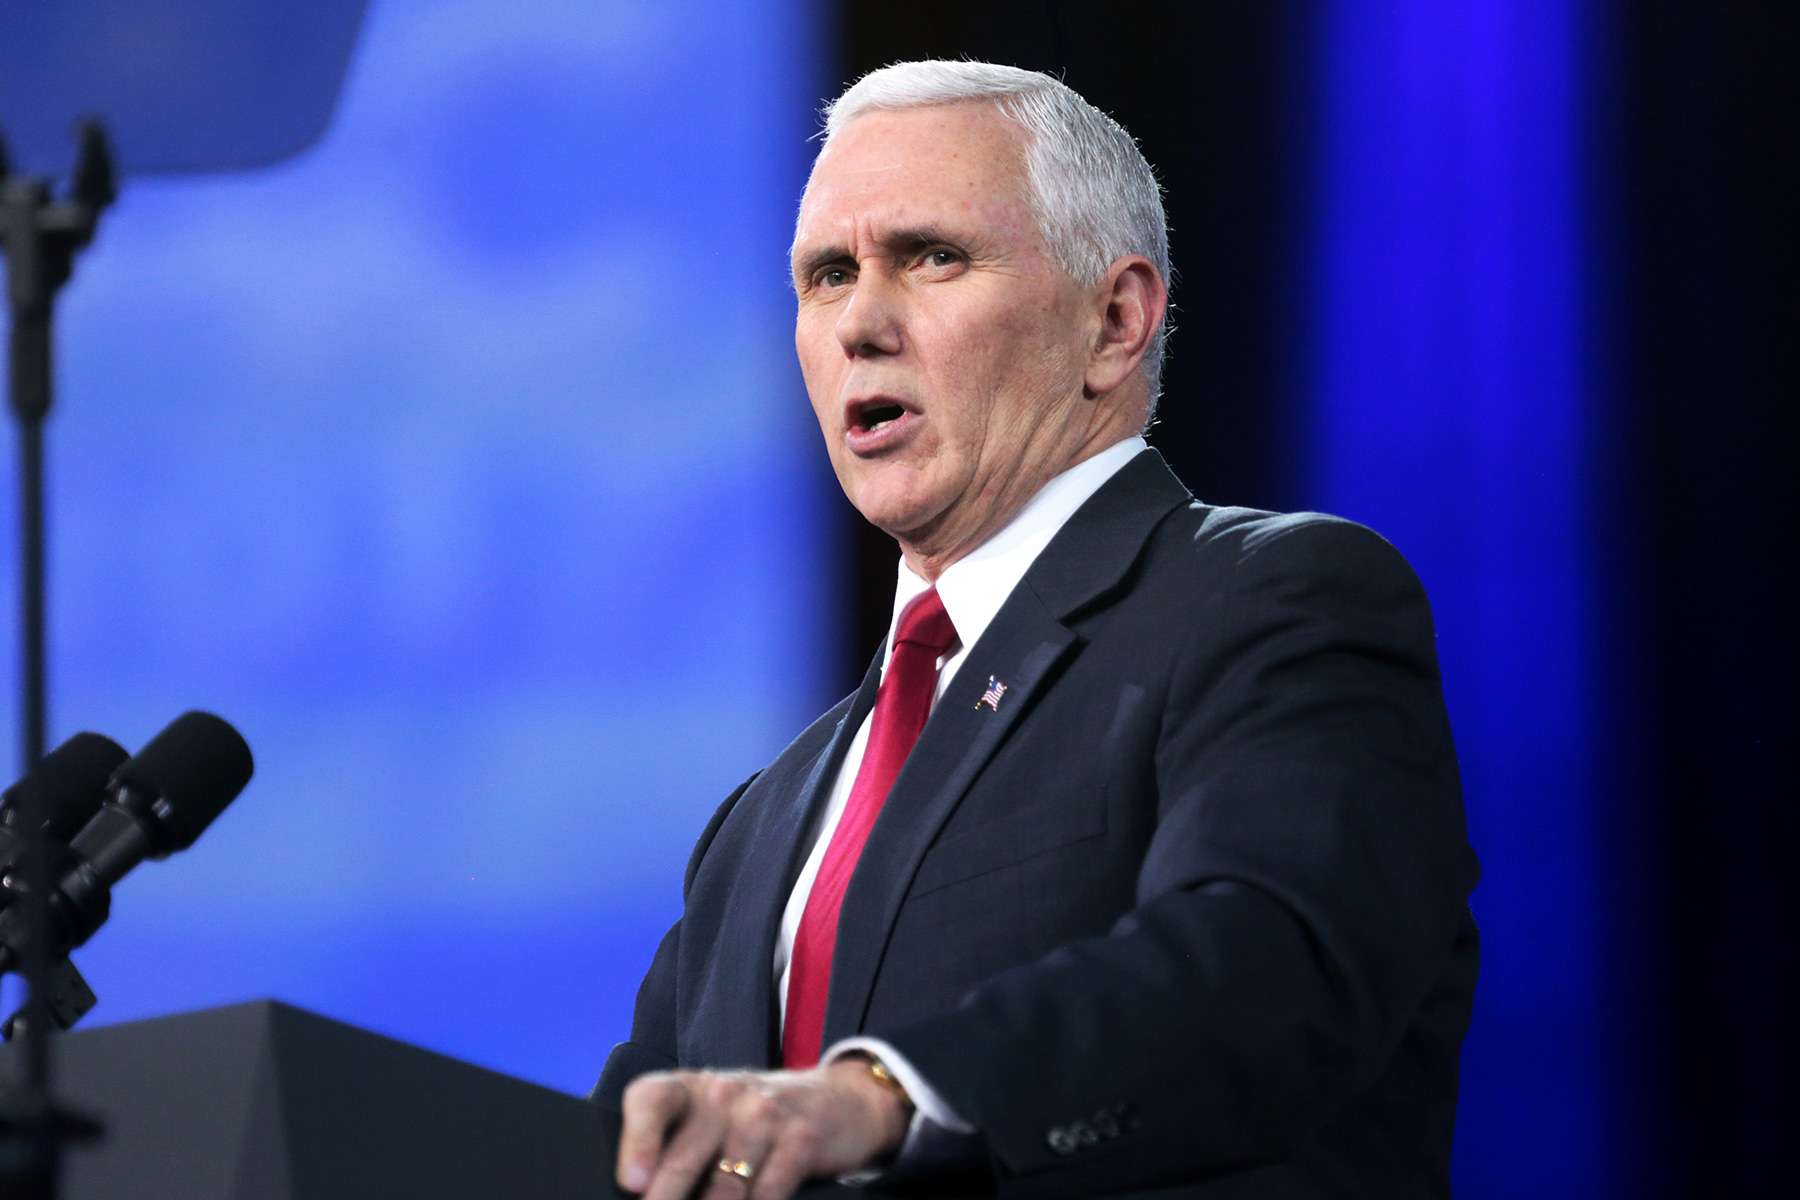 Pence's Red Eye Raises COVID Concerns